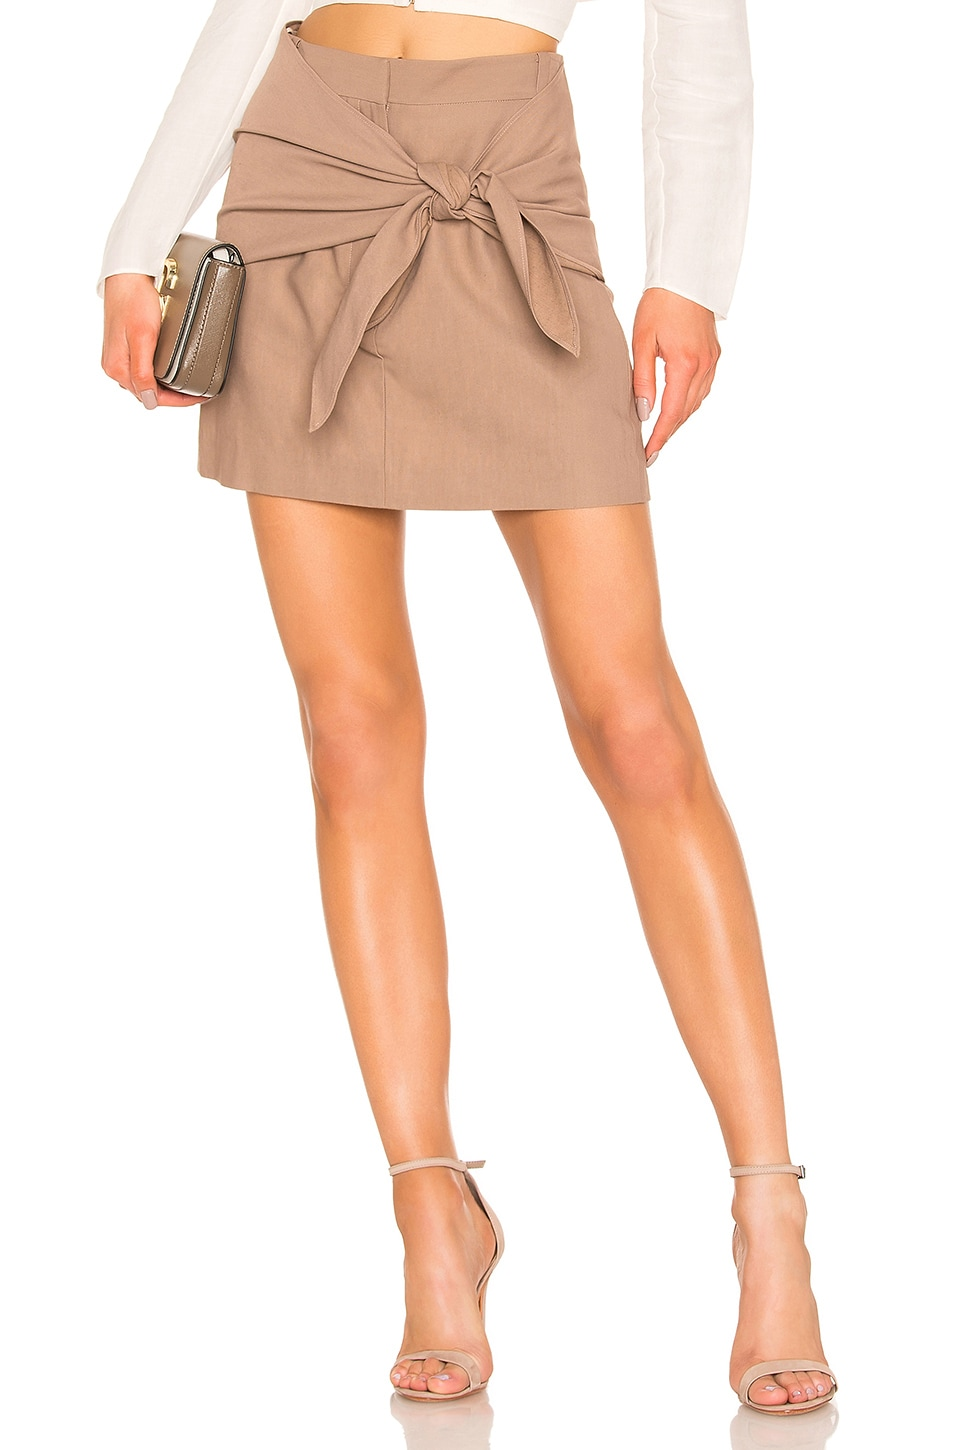 Tibi Removable Tie Mini Skirt in Sable Brown